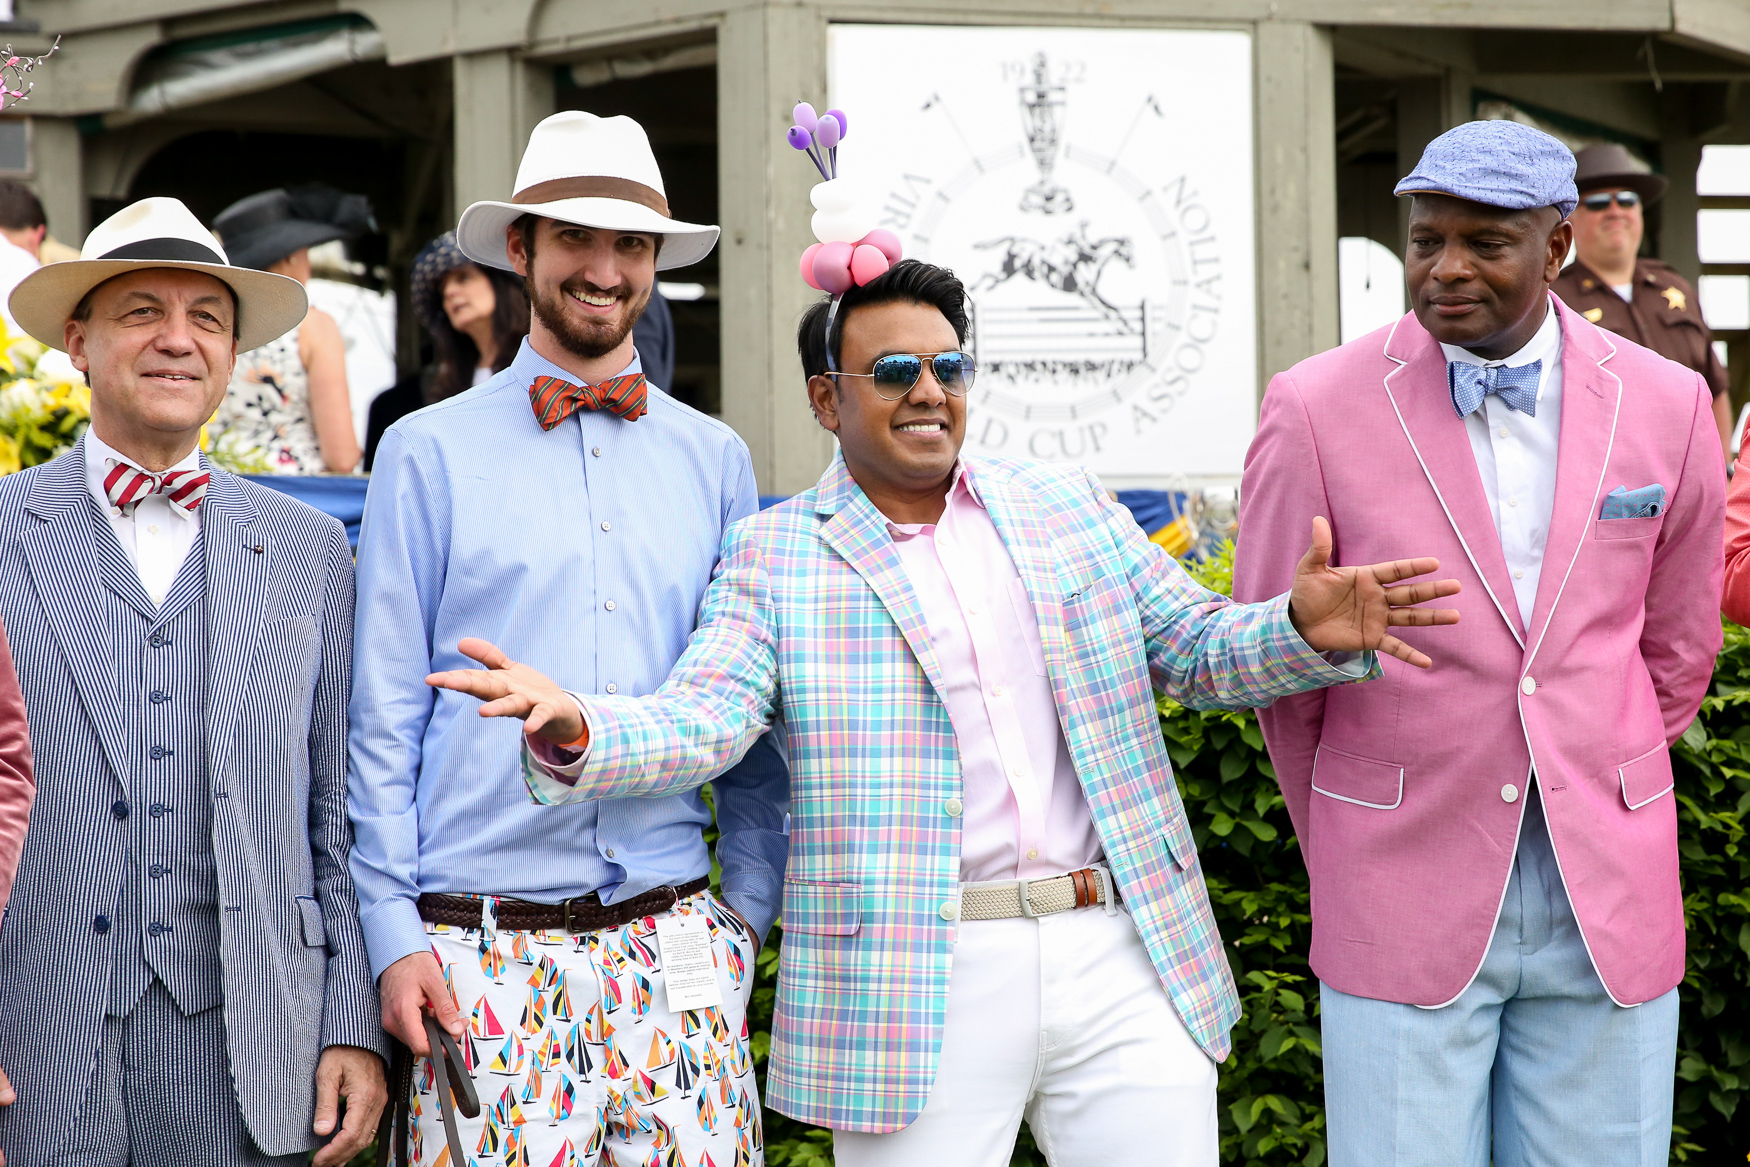 These guys were competing to be the most fashionable man, but we liked everyone's style!{ } (Amanda Andrade-Rhoades/DC Refined)